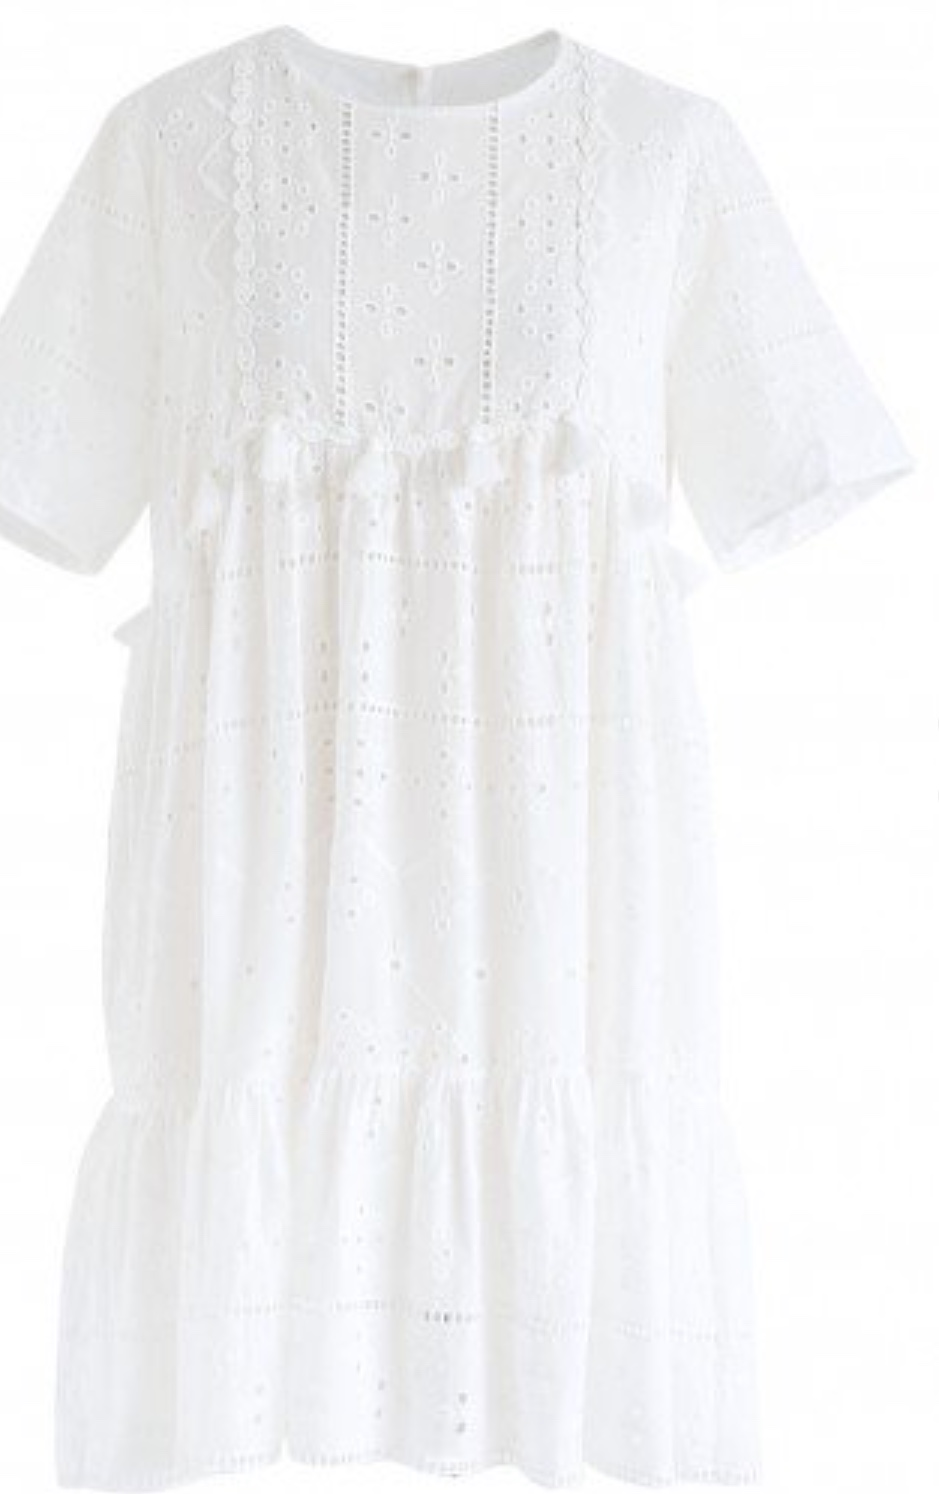 Throw on some wedges and this little dress can take you from church to brunch to work and everything in between!